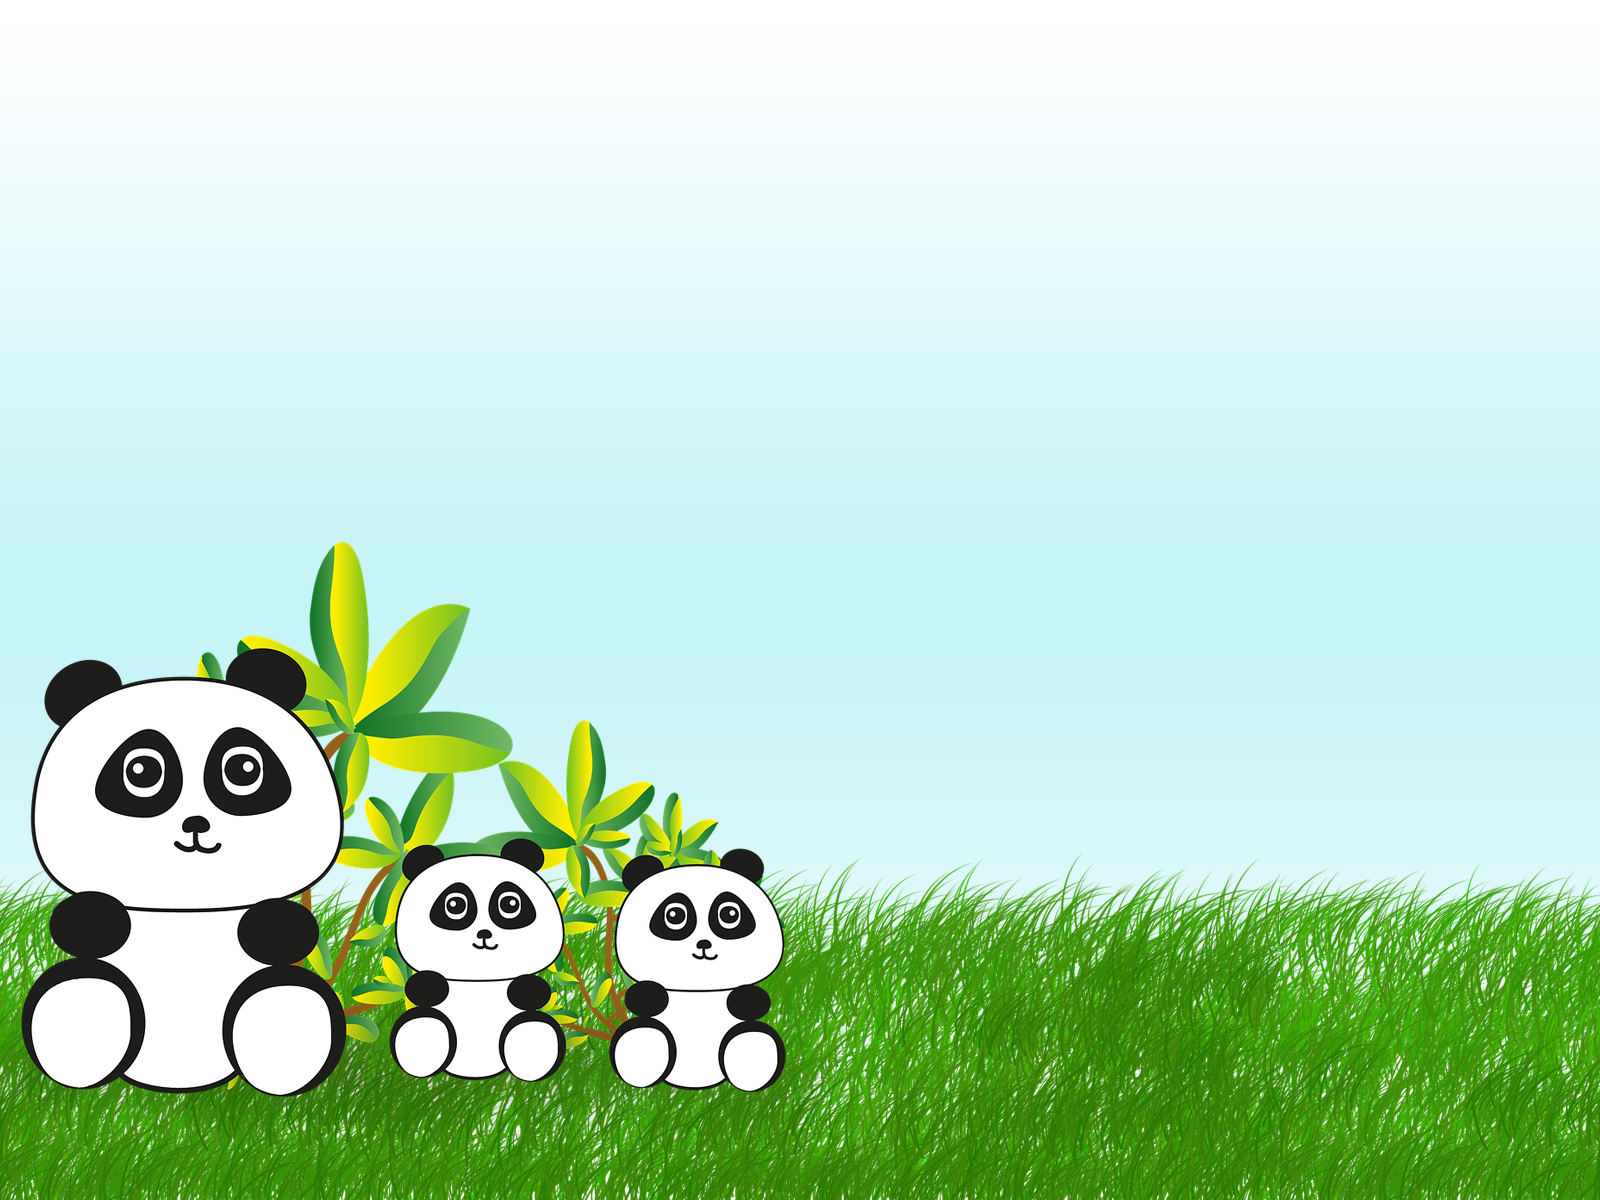 Free Animal Wallpaper Backgrounds Panda Bear In China Backgrounds Animals Green Grey